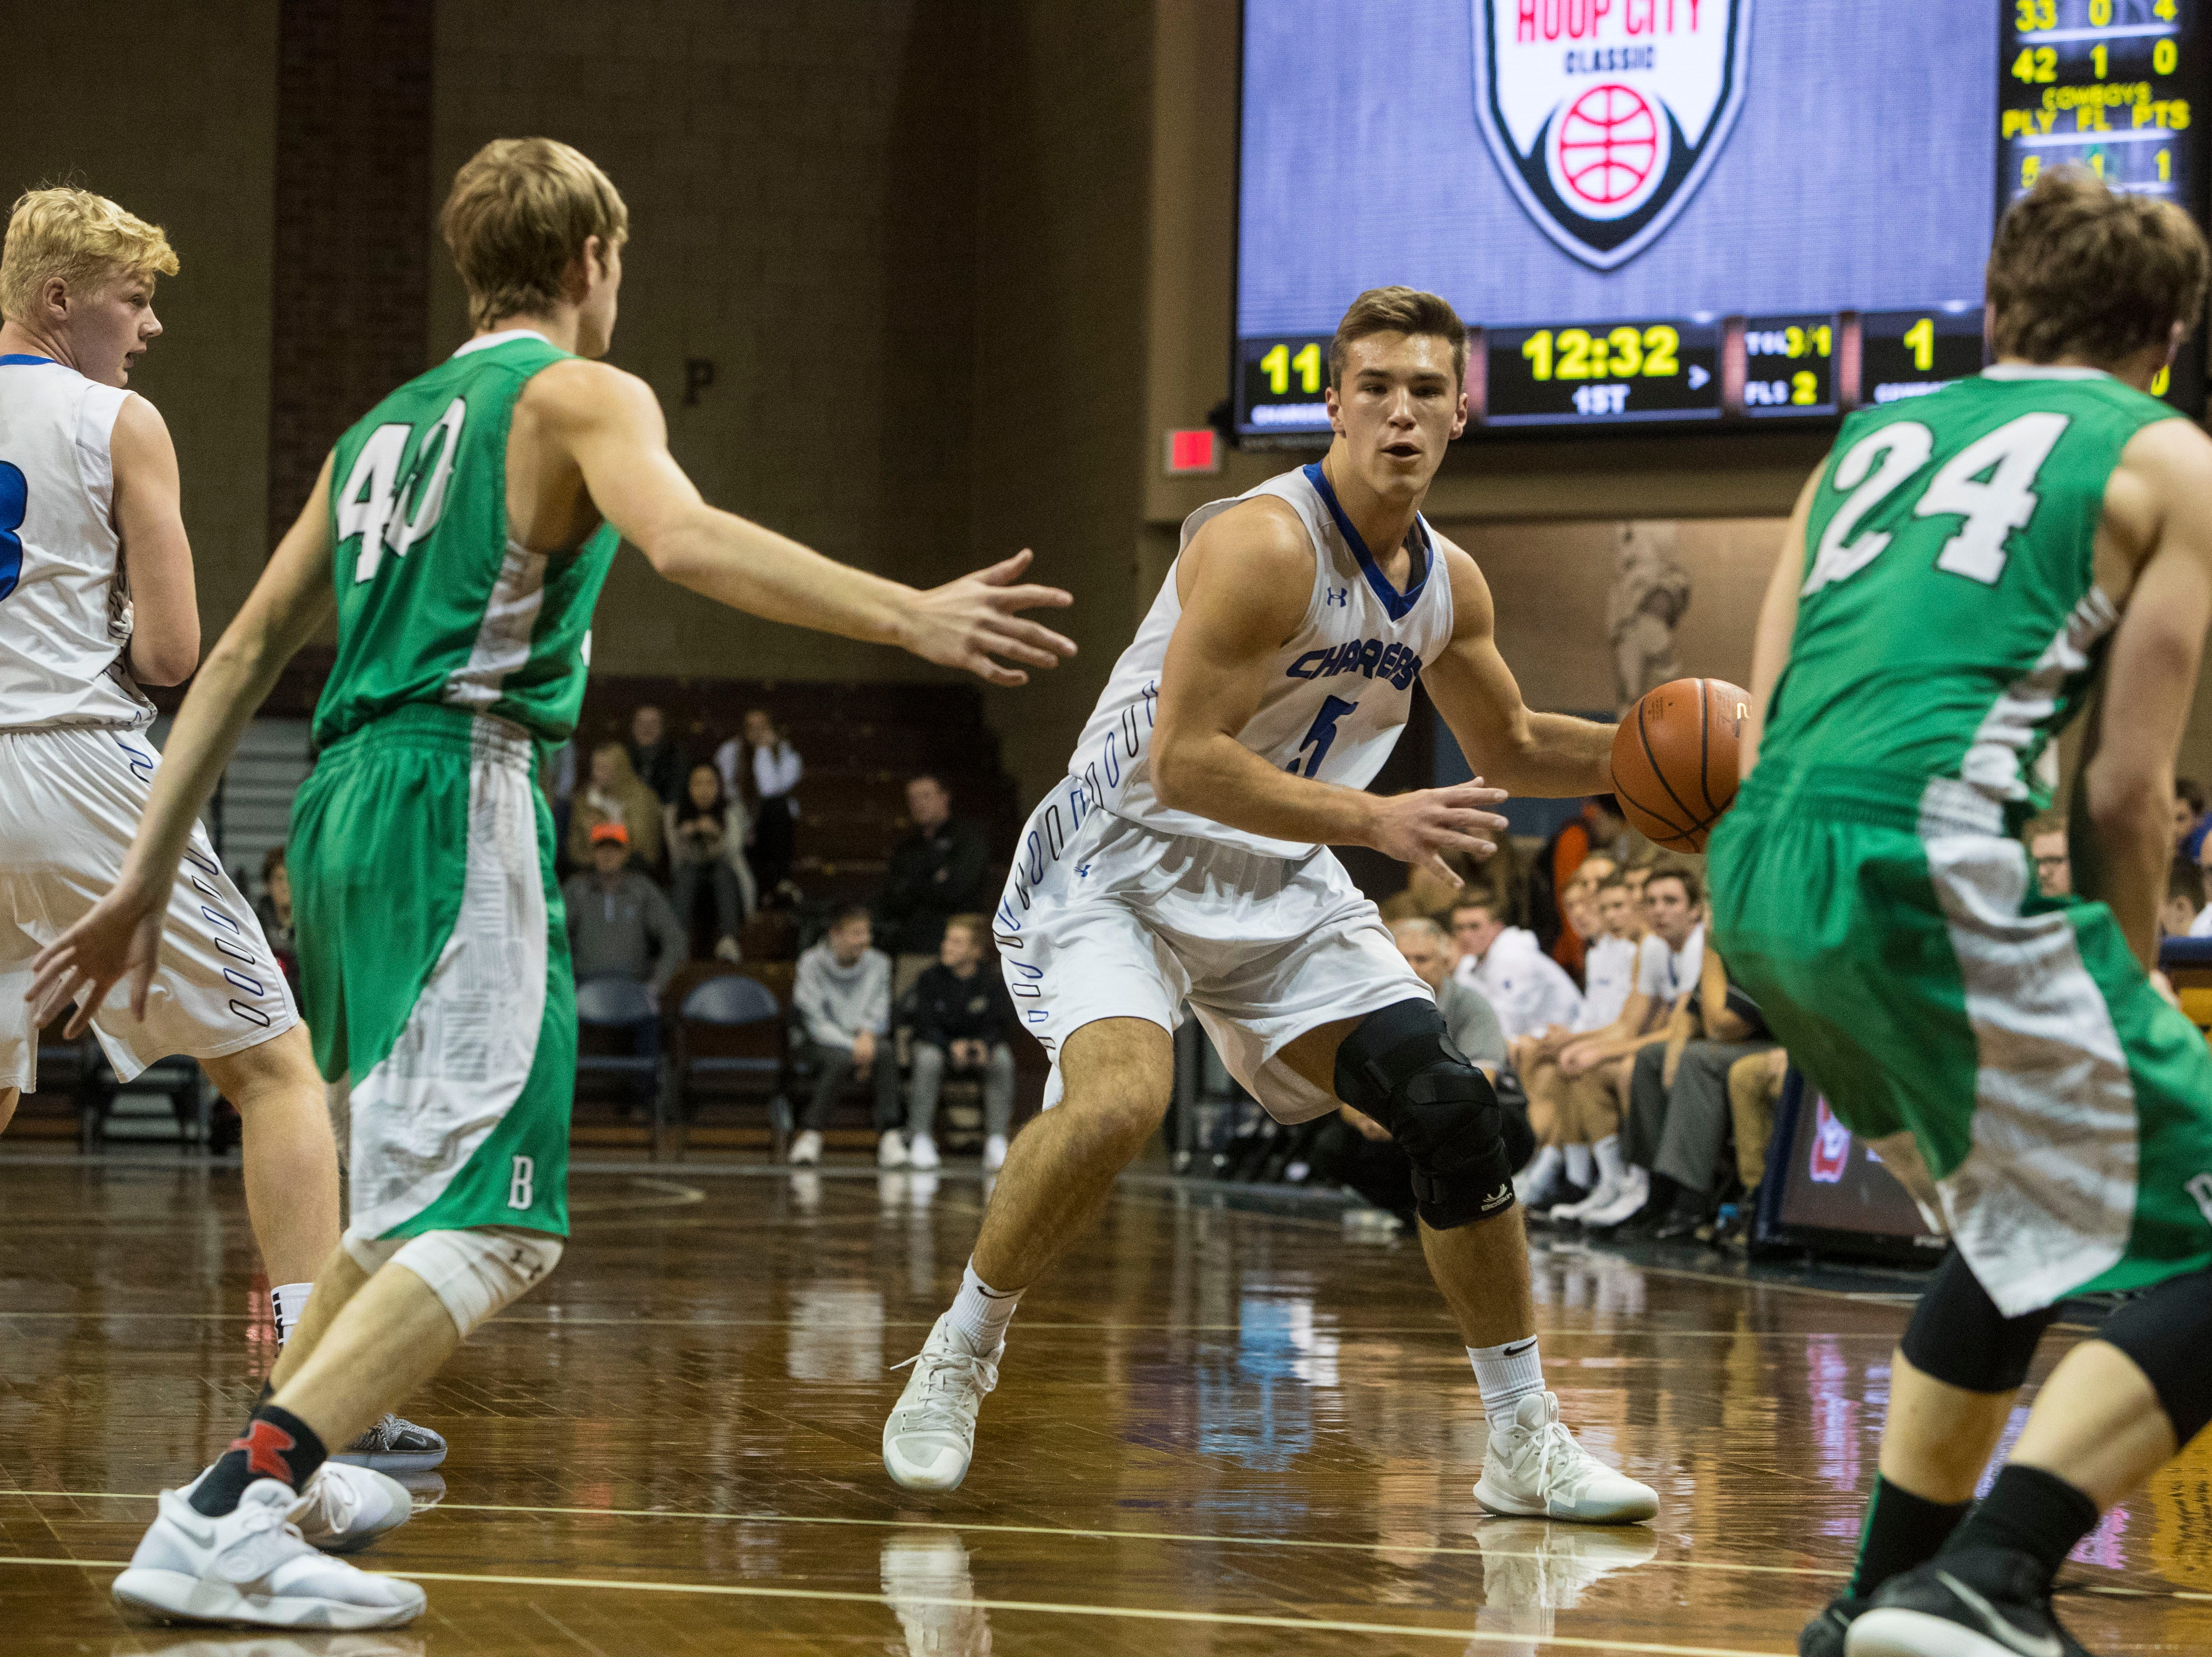 Sioux Falls Christian's Mitchell Goodbary (5) looks to pass the ball during a game against Breckenridge at the Hoop City Classic at the Sanford Pentagon in Sioux Falls, S.D., Saturday, Dec. 29, 2018.